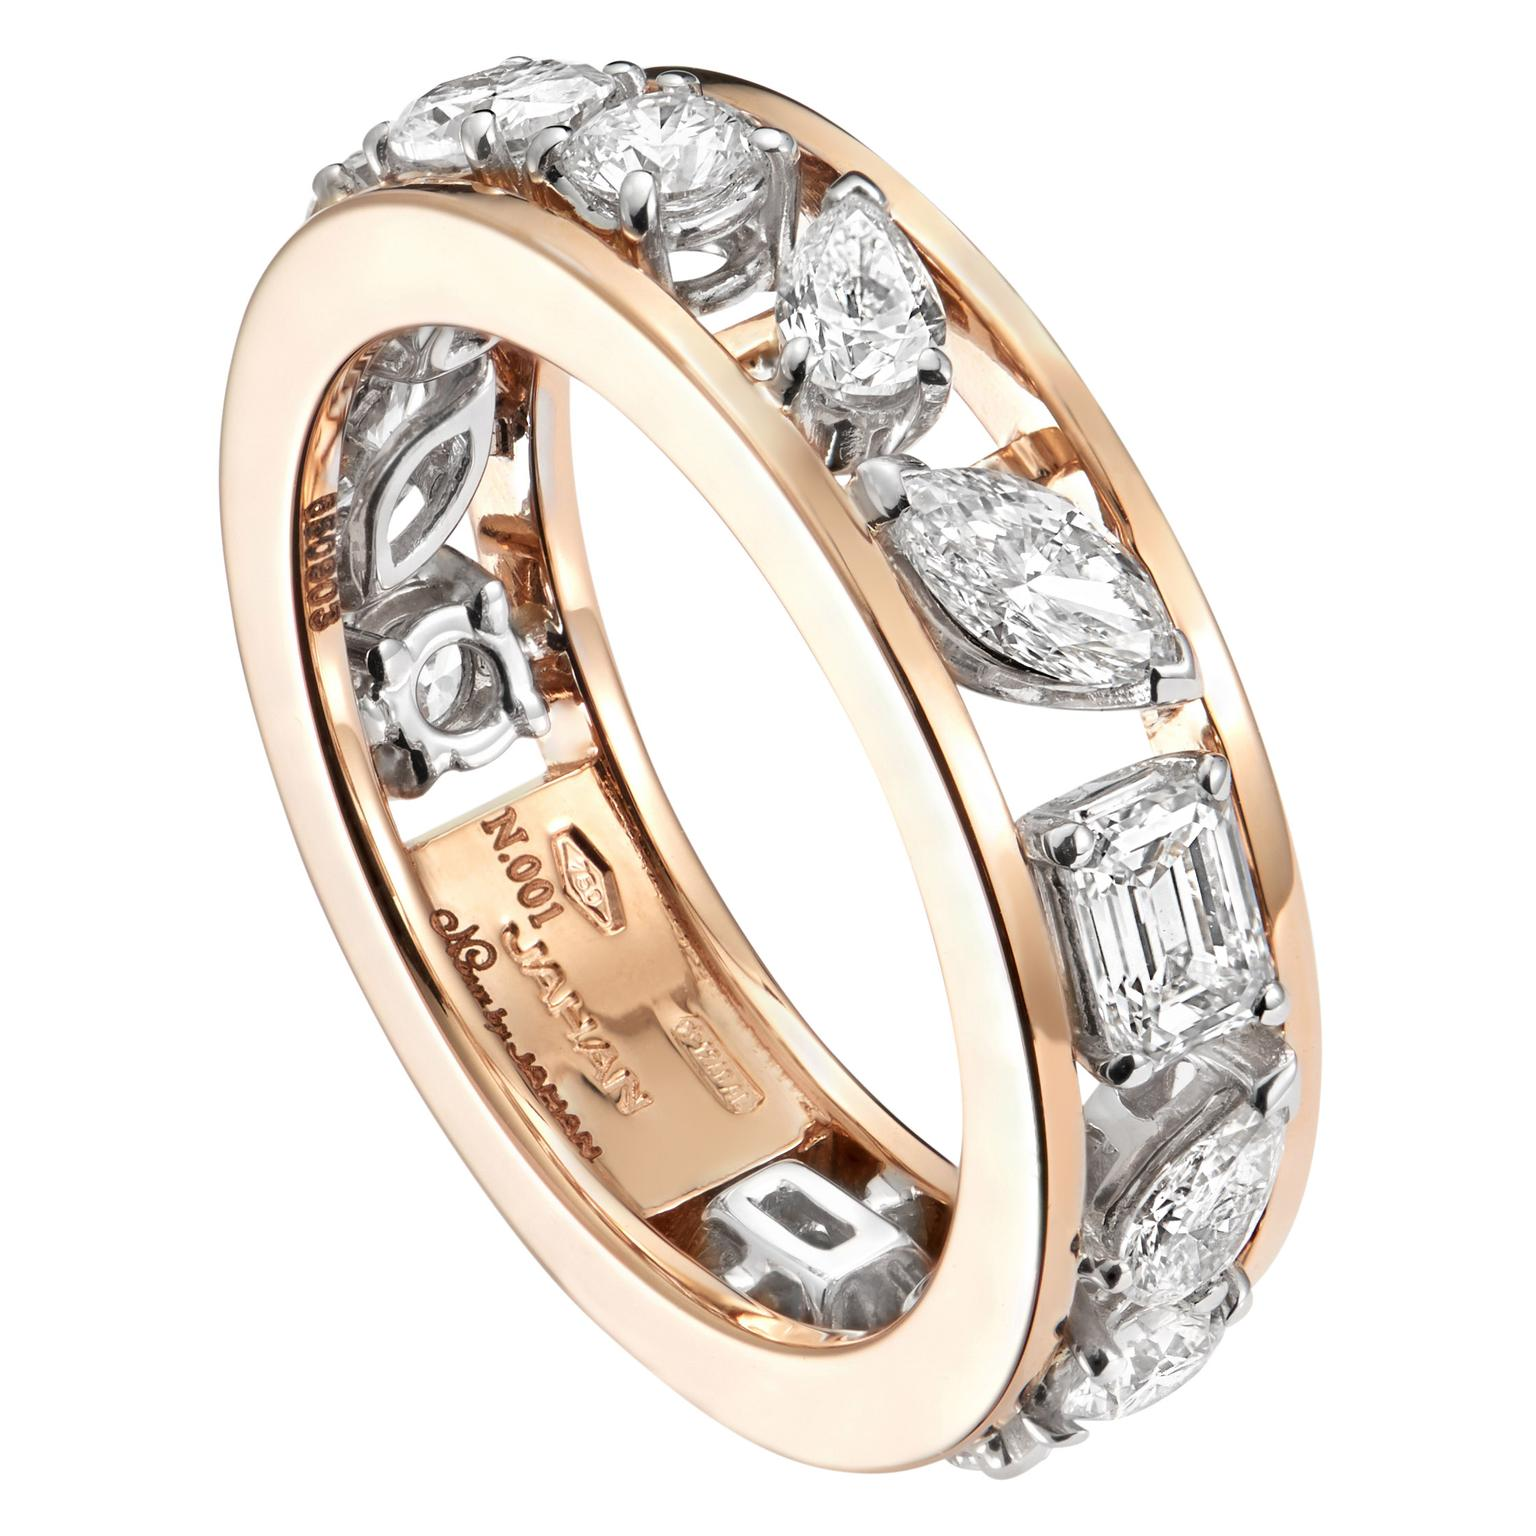 Nour By Jahan  Ring from the Jolie Collection